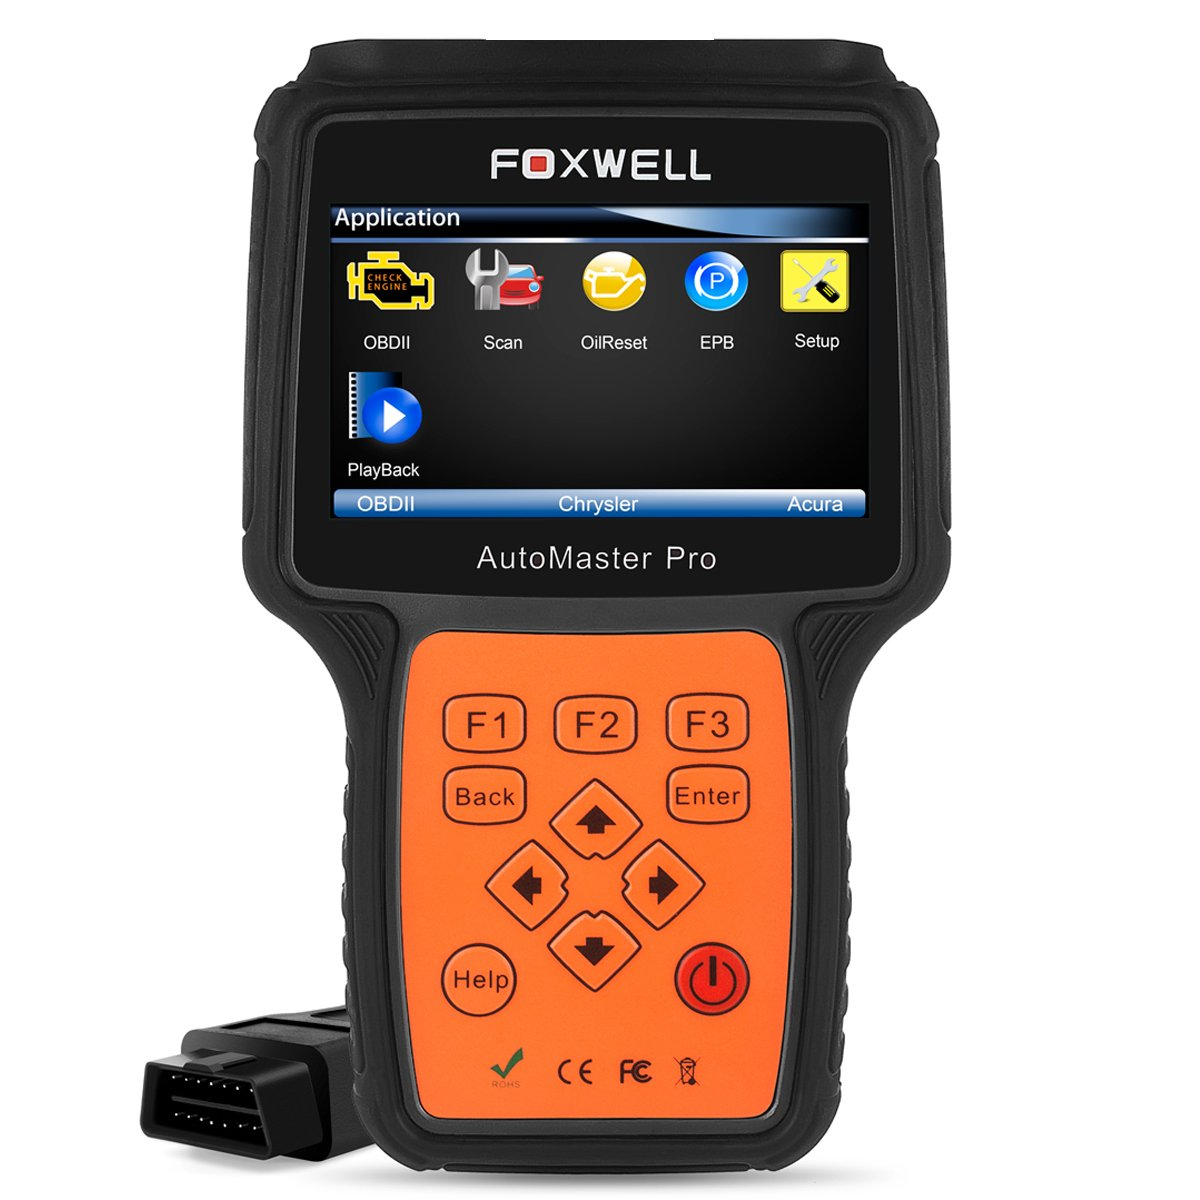 Full System OBD2 Scanner Foxwell NT624 Obdii Diagnose Engine/ ABS/ Airbag/ Transmisson/ EPB/ Oil Service Universal Diagnostic Tool Error Code Reader